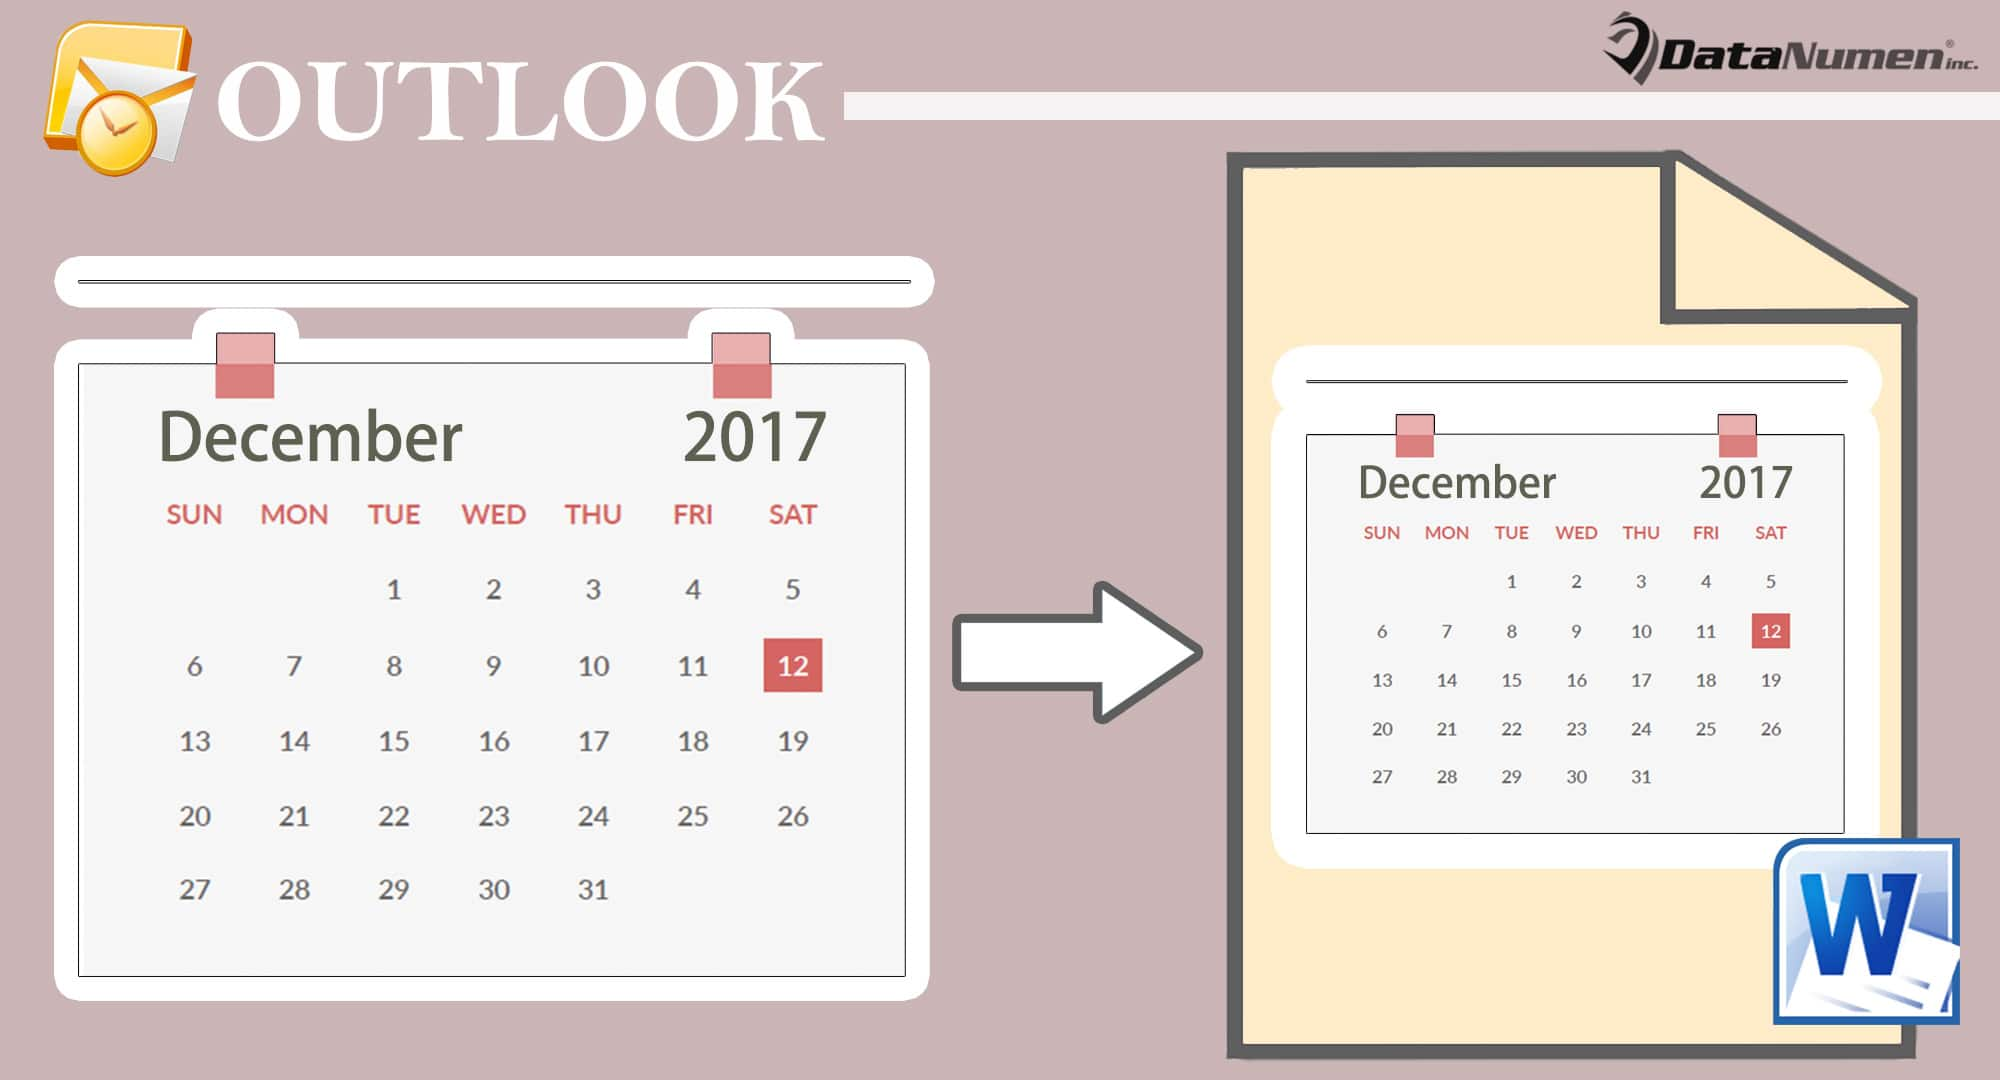 Export Your Outlook Calendar to a Word Document